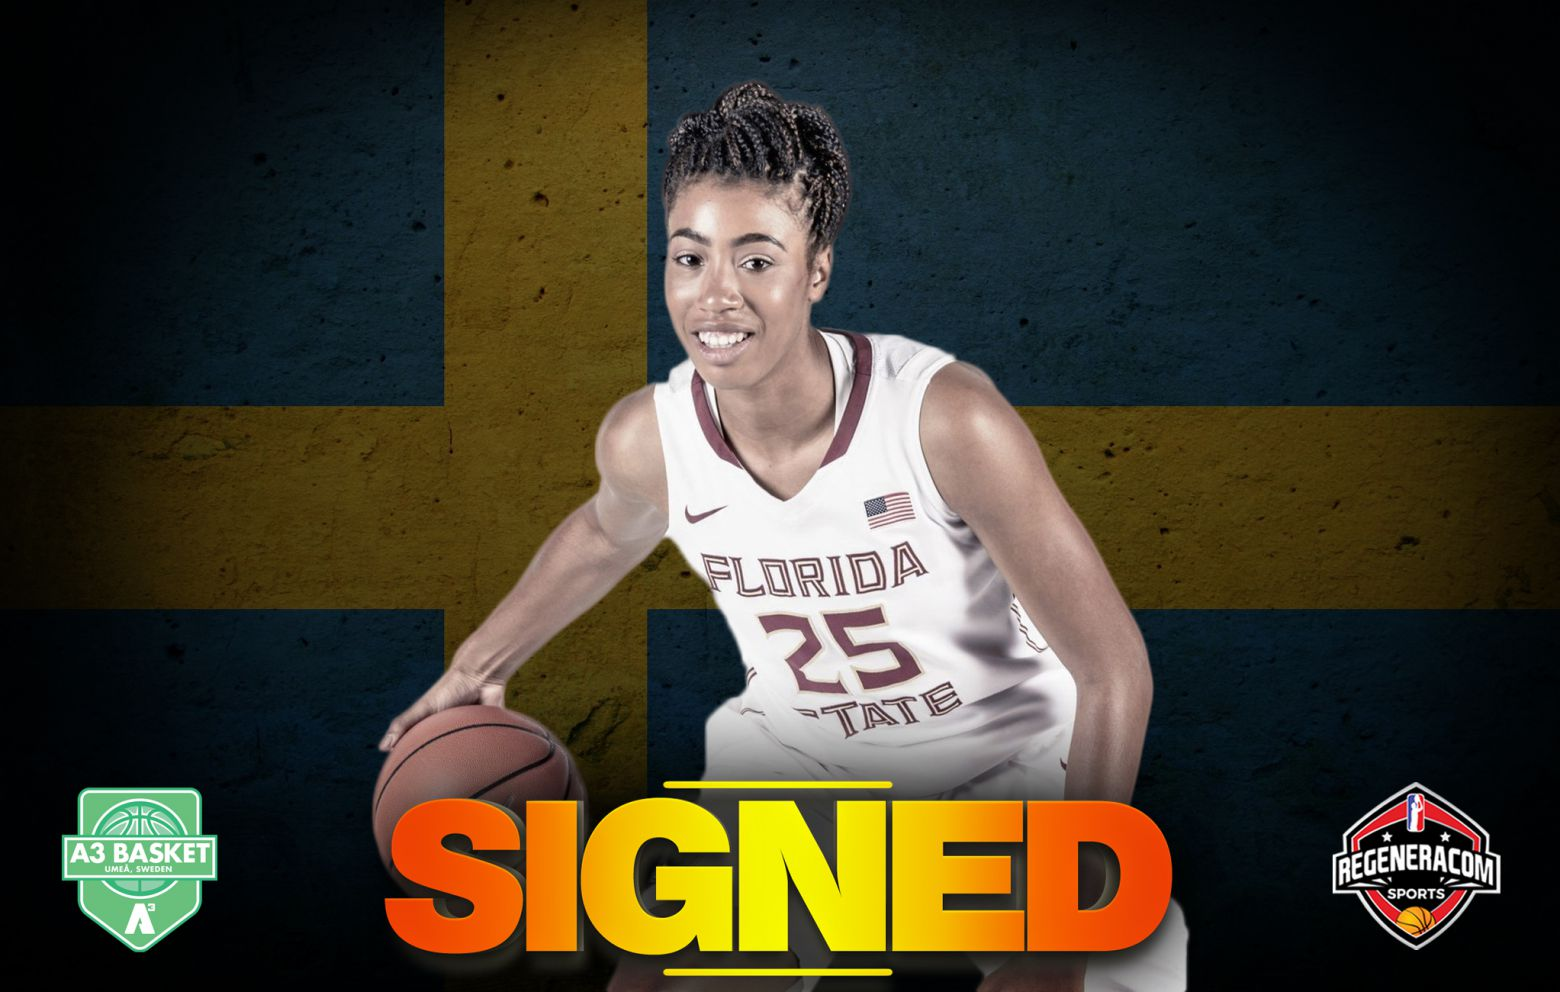 AMA DEGBEON has signed in Sweden with A3 Basket Umea